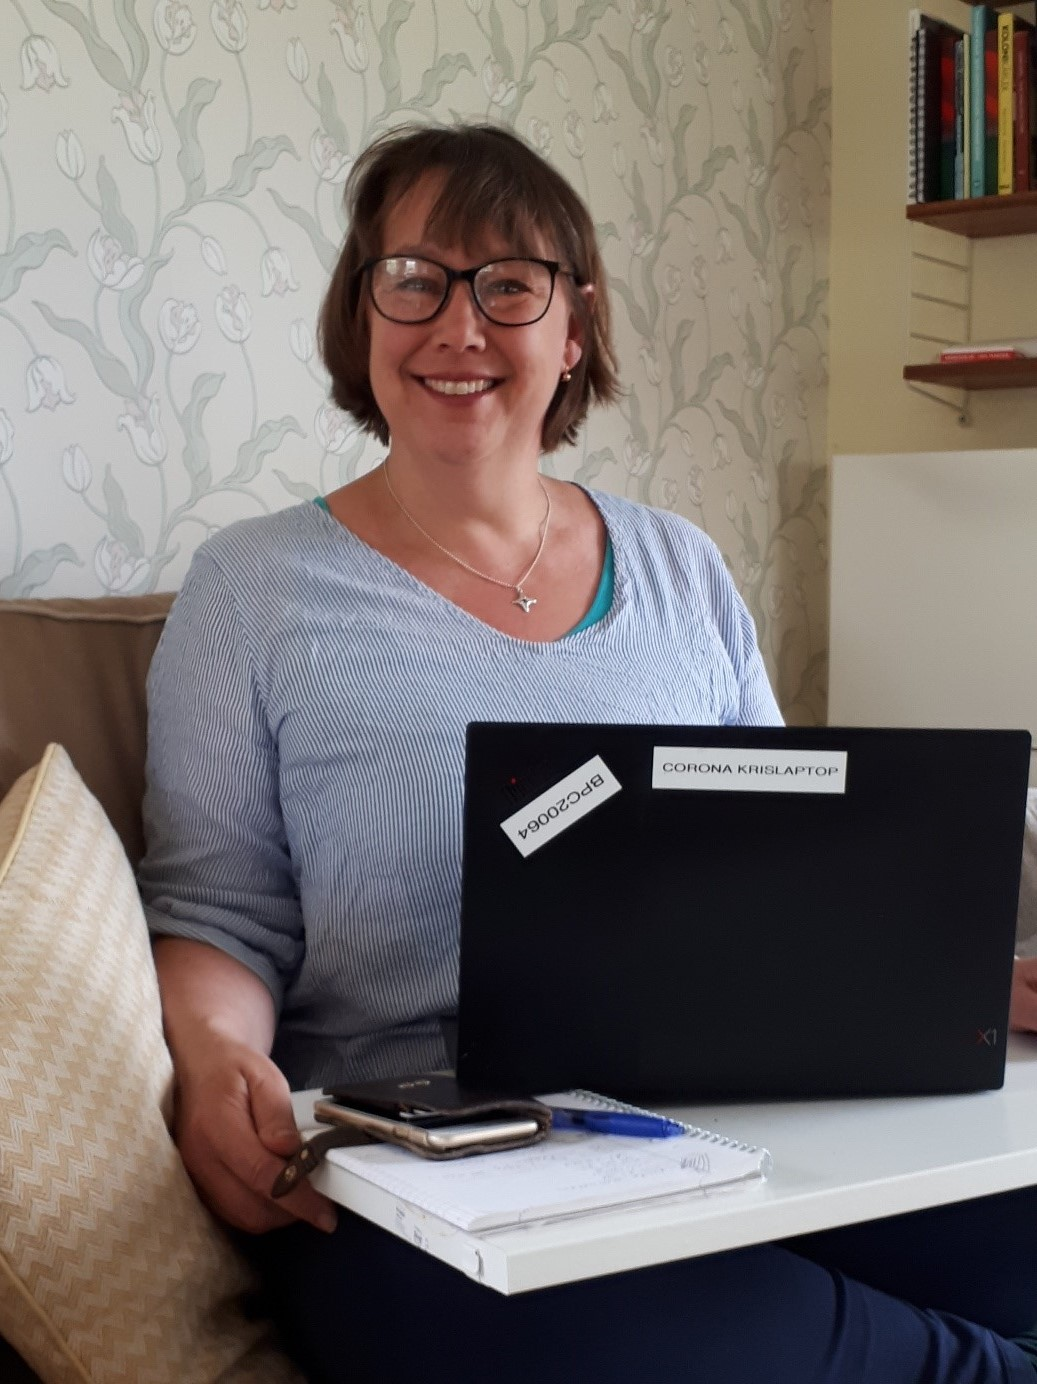 Sara Appelquist provides support to the Public Health Agency of Sweden as an emergency public information officer. This week she is working from home.